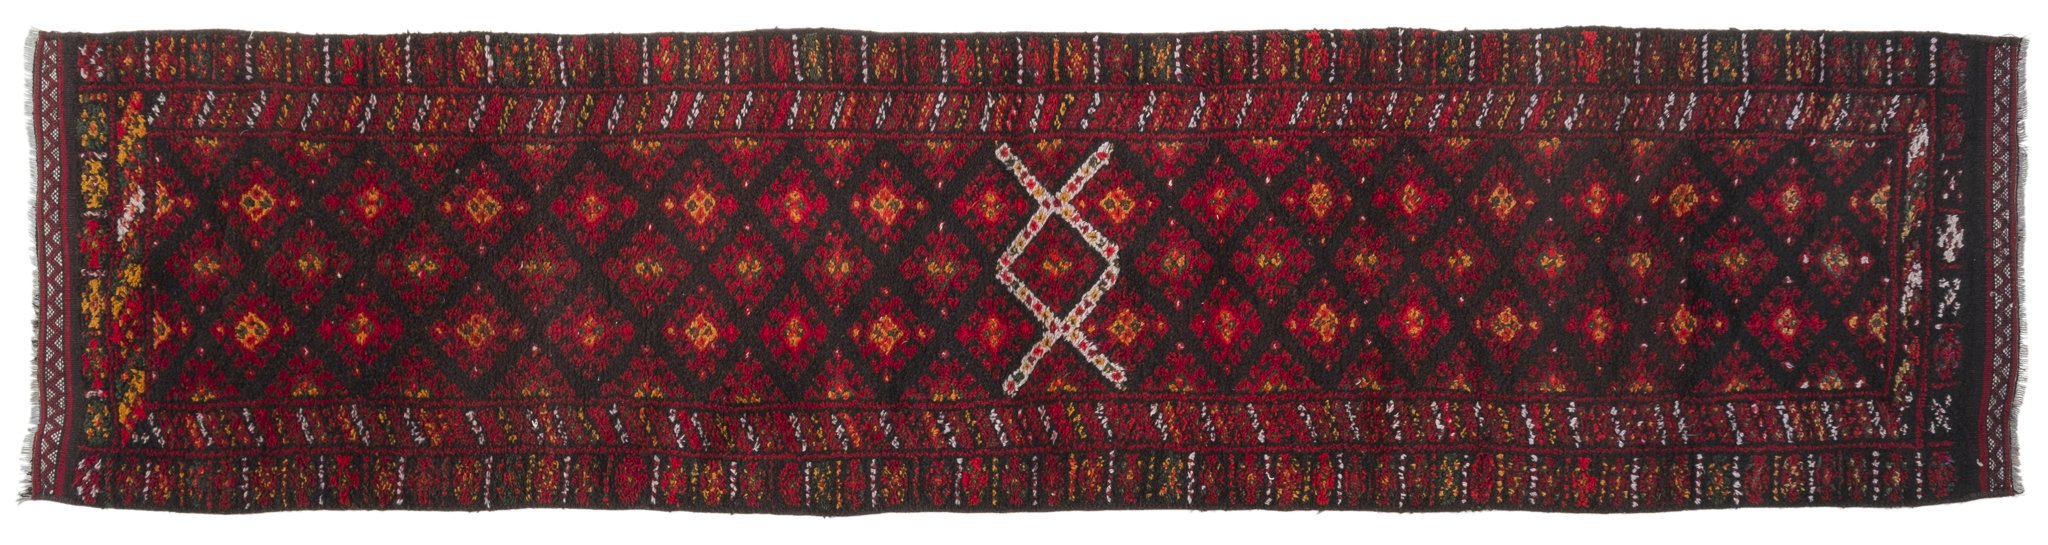 Vintage Turkish Runner Rug Aquilino